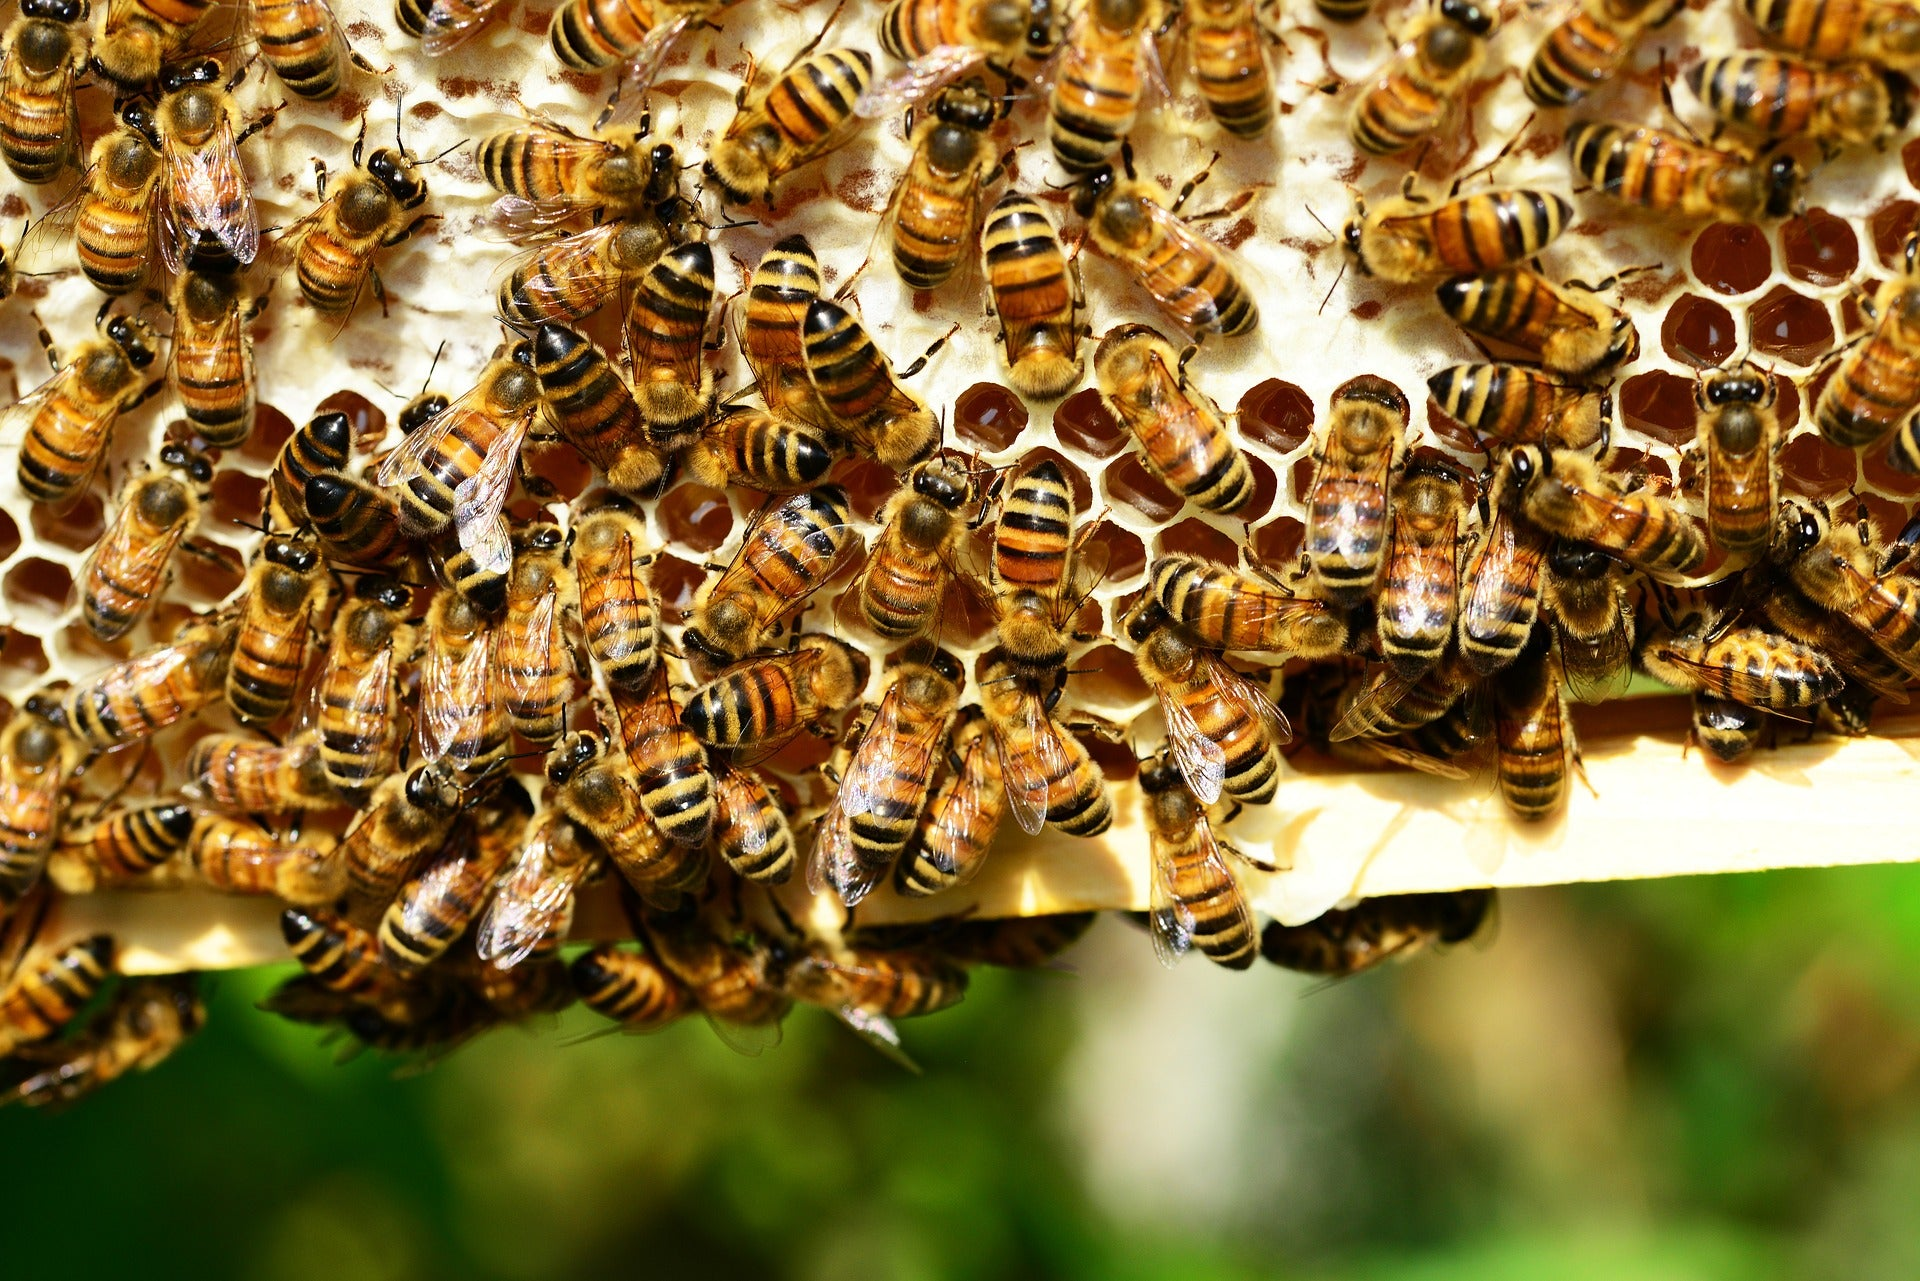 Facts about Honey bees